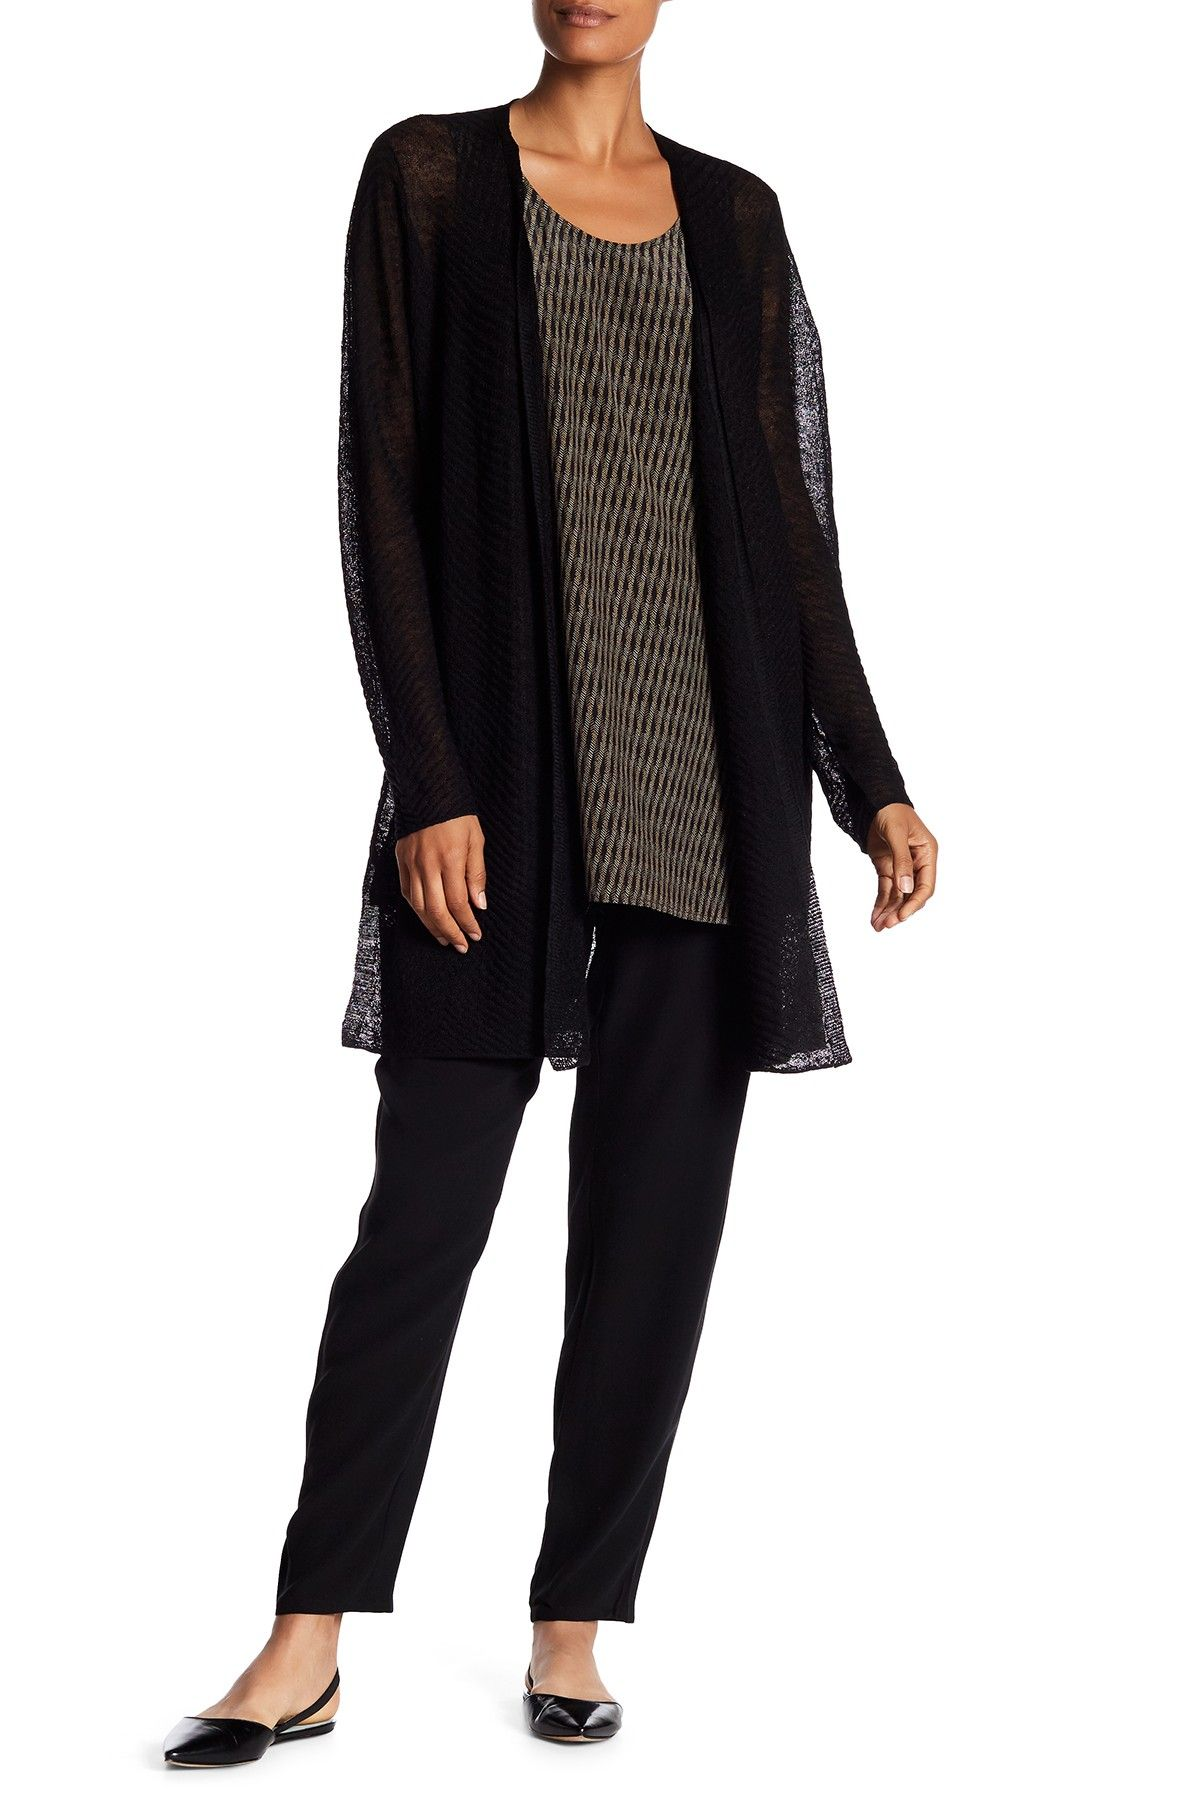 best neck knit images fisher eileen pinterest autumn v nordstrom style cashmere on hautelook rack tunic fall